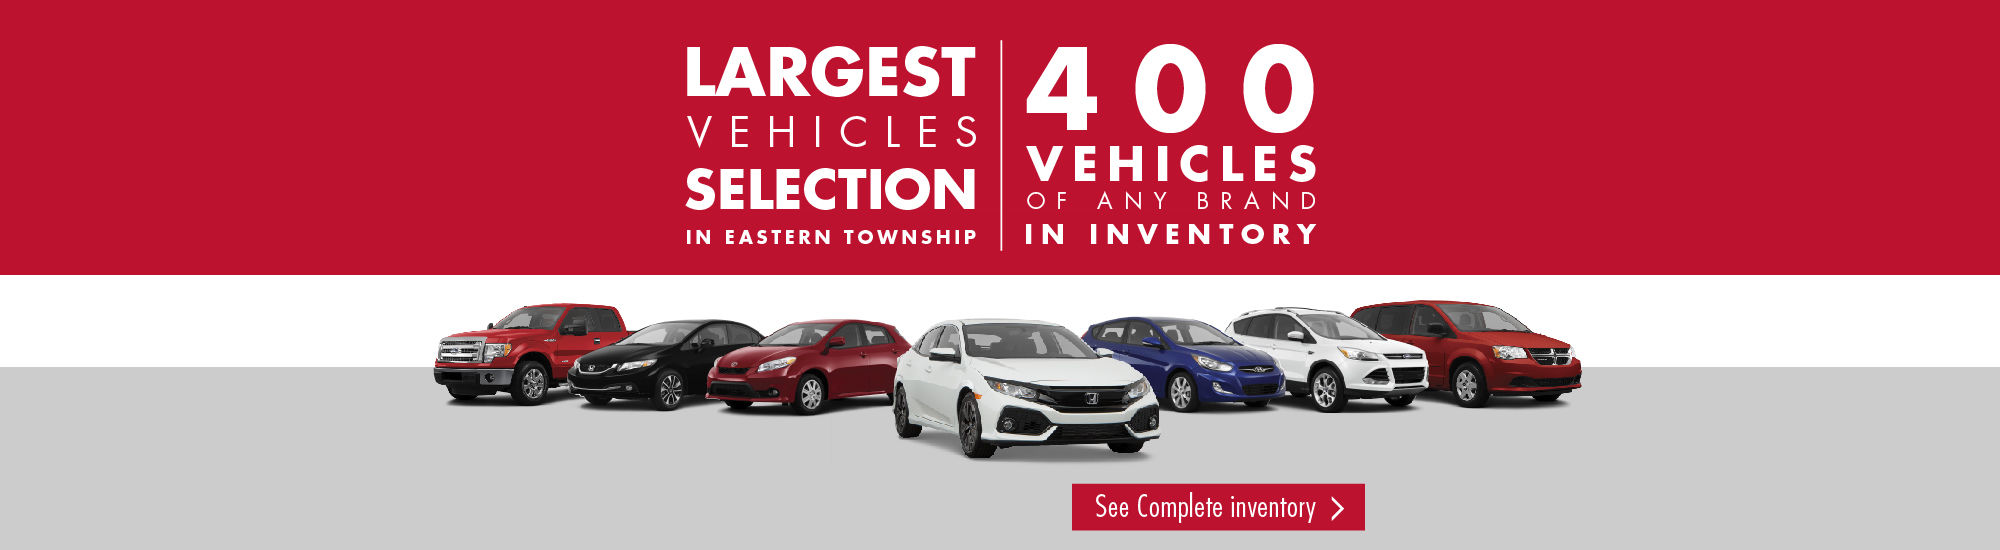 Largest selection - EAC